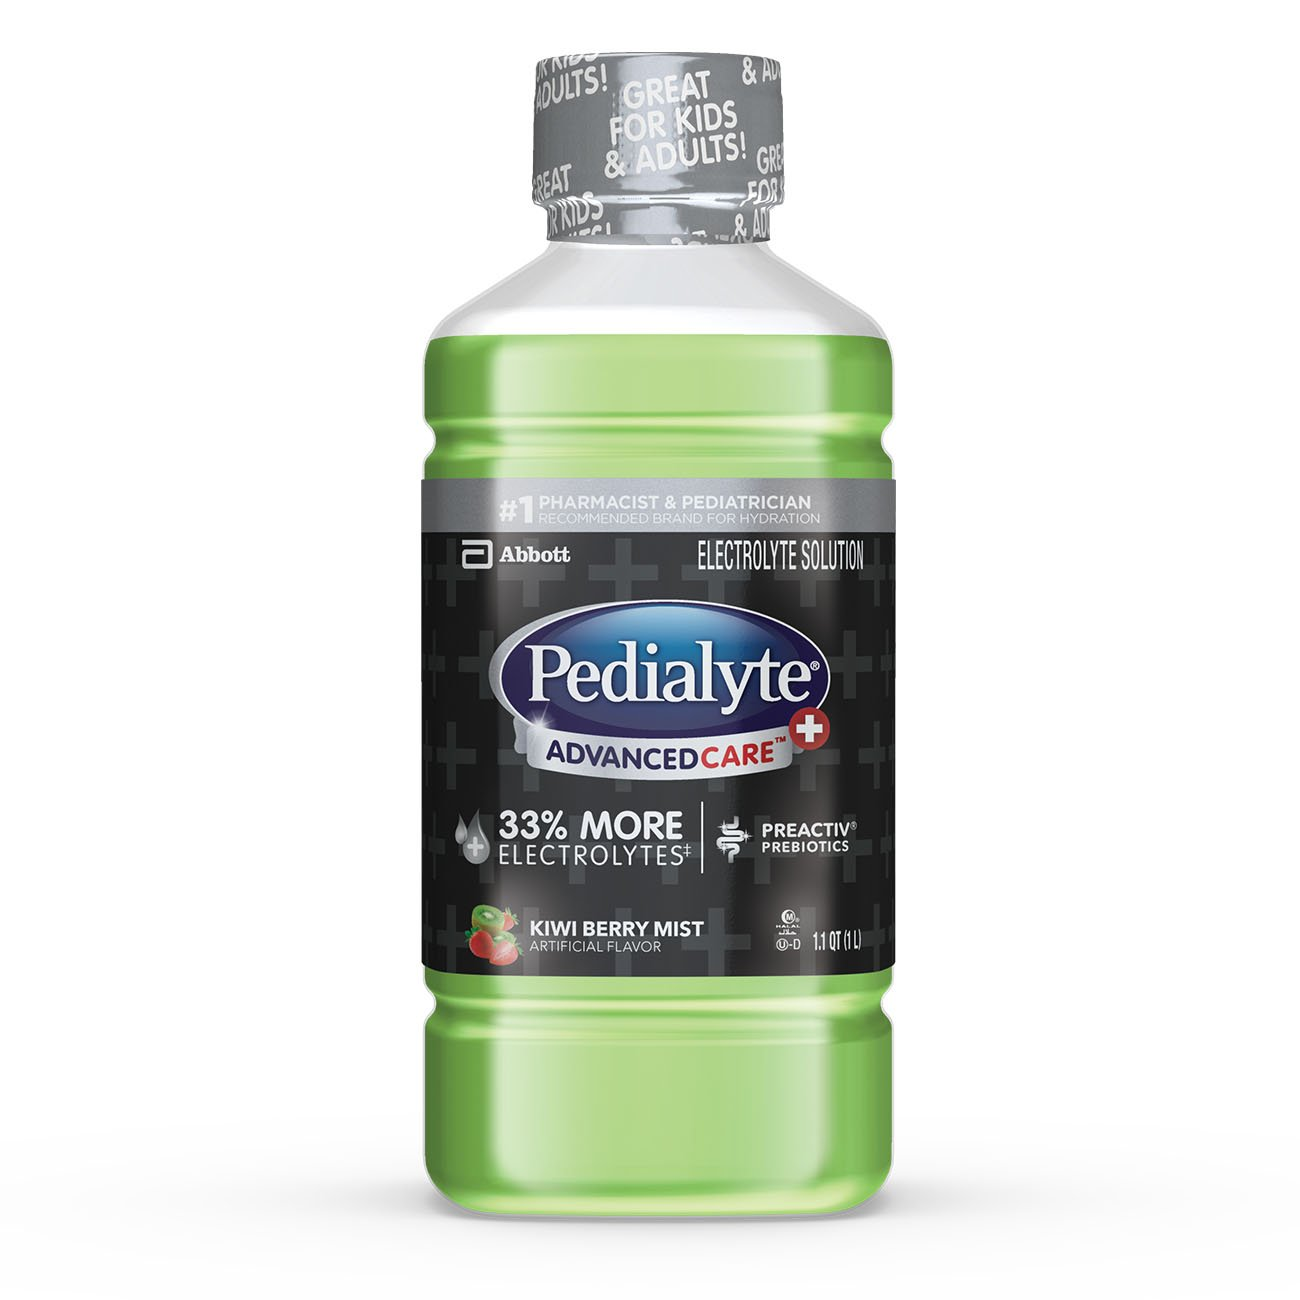 Pedialyte AdvancedCare+ Electrolyte Drink with 33% More Electrolytes and has PreActiv Prebiotics, Kiwi Berry Mist, 1 Liter, 4 Count